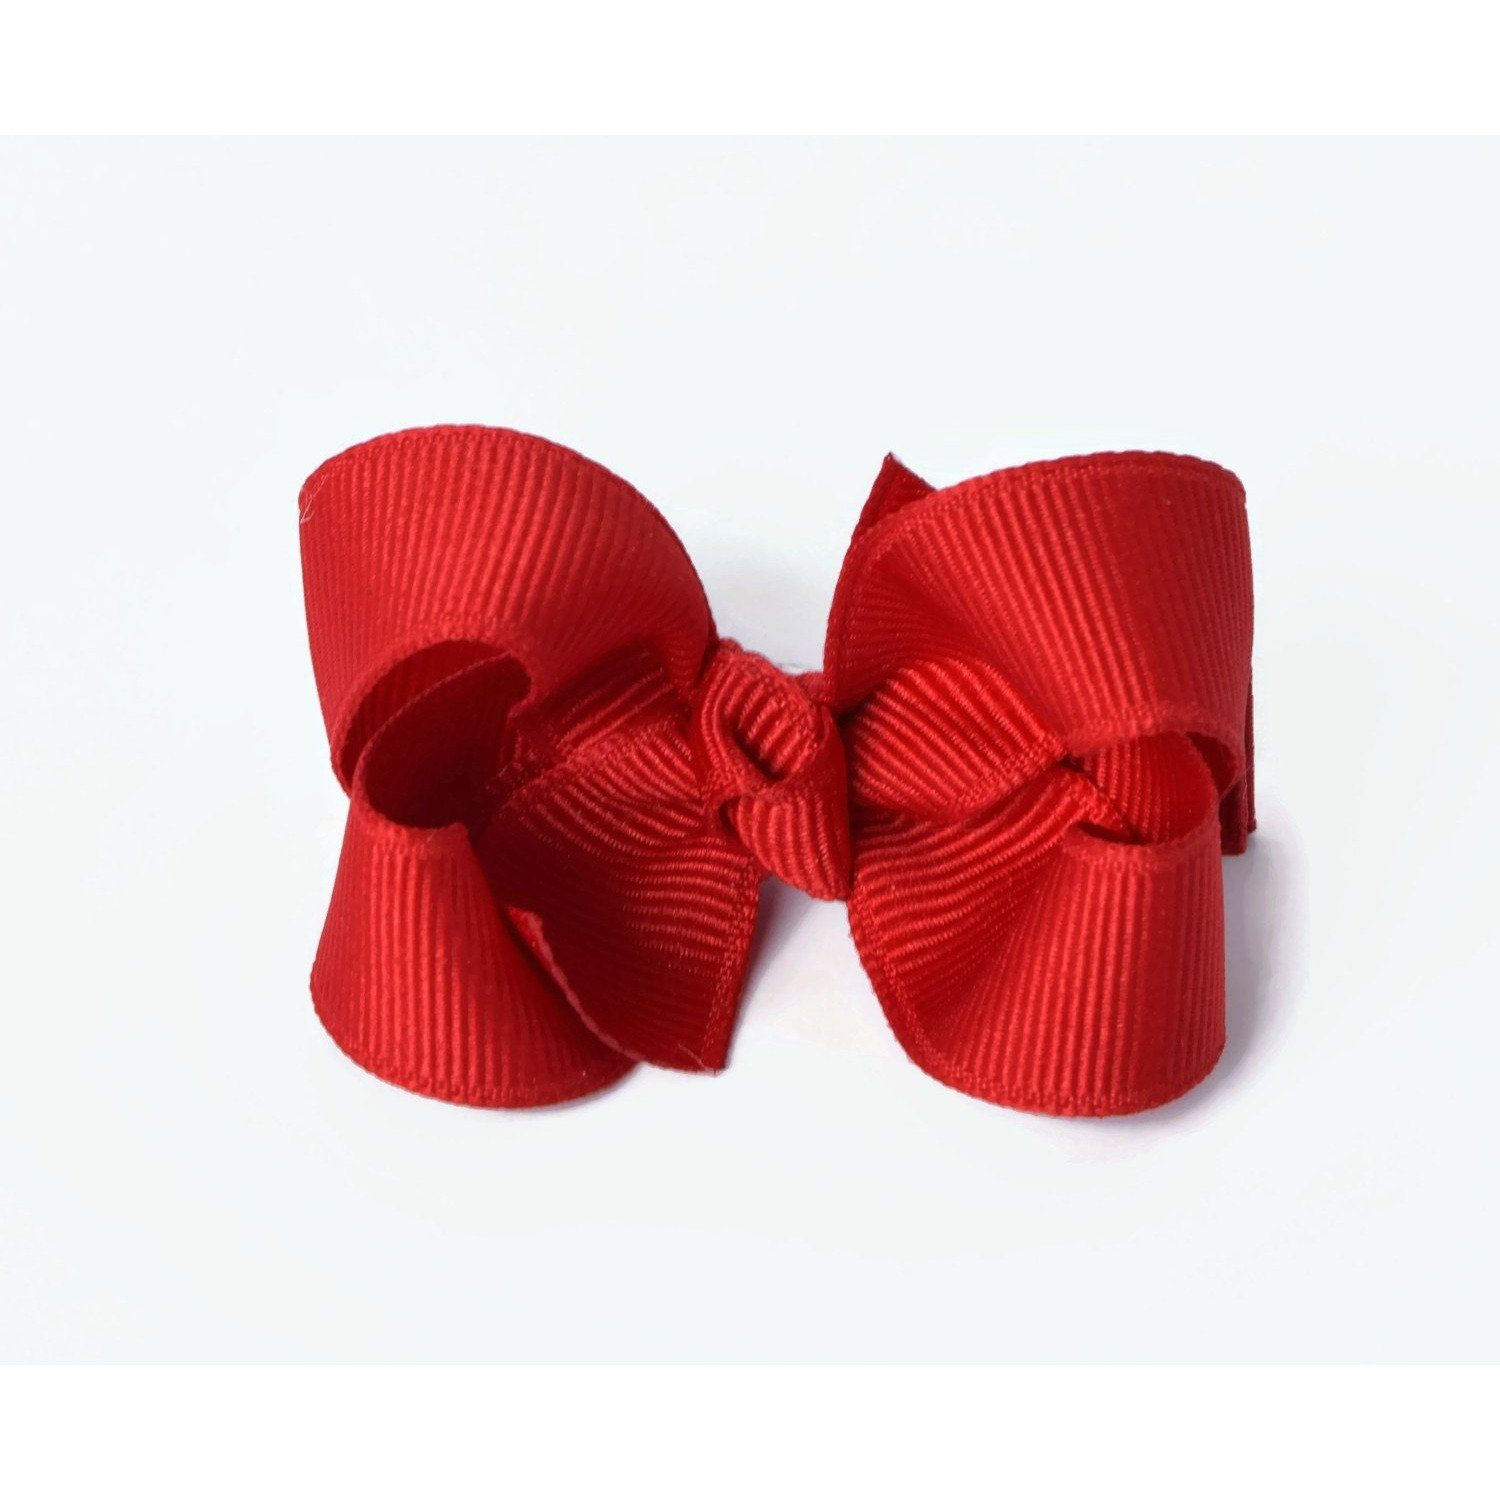 Red Bow - Adorable Essentials, LLC